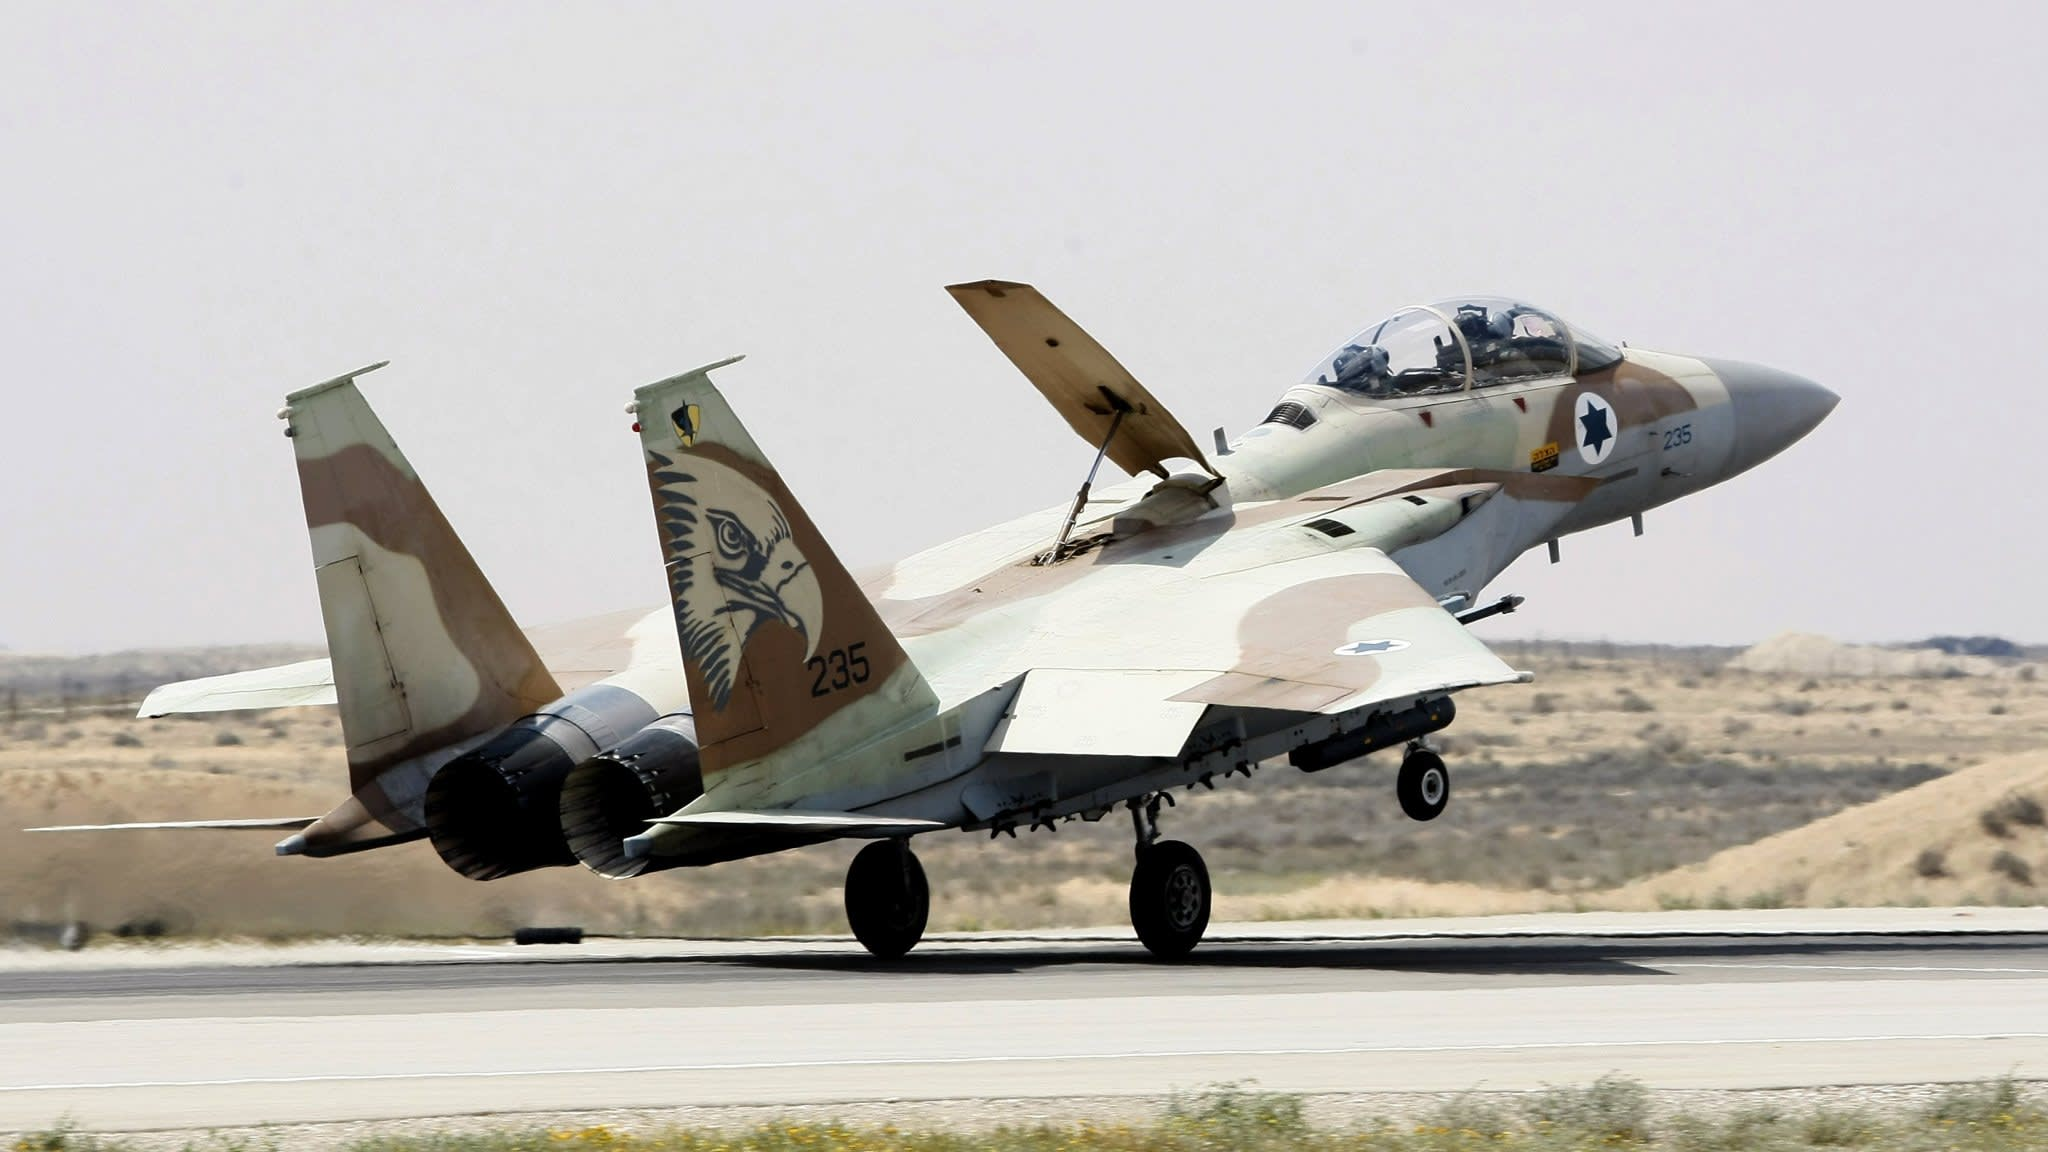 Russia and Syria accuse Israel of bombing air base near Homs